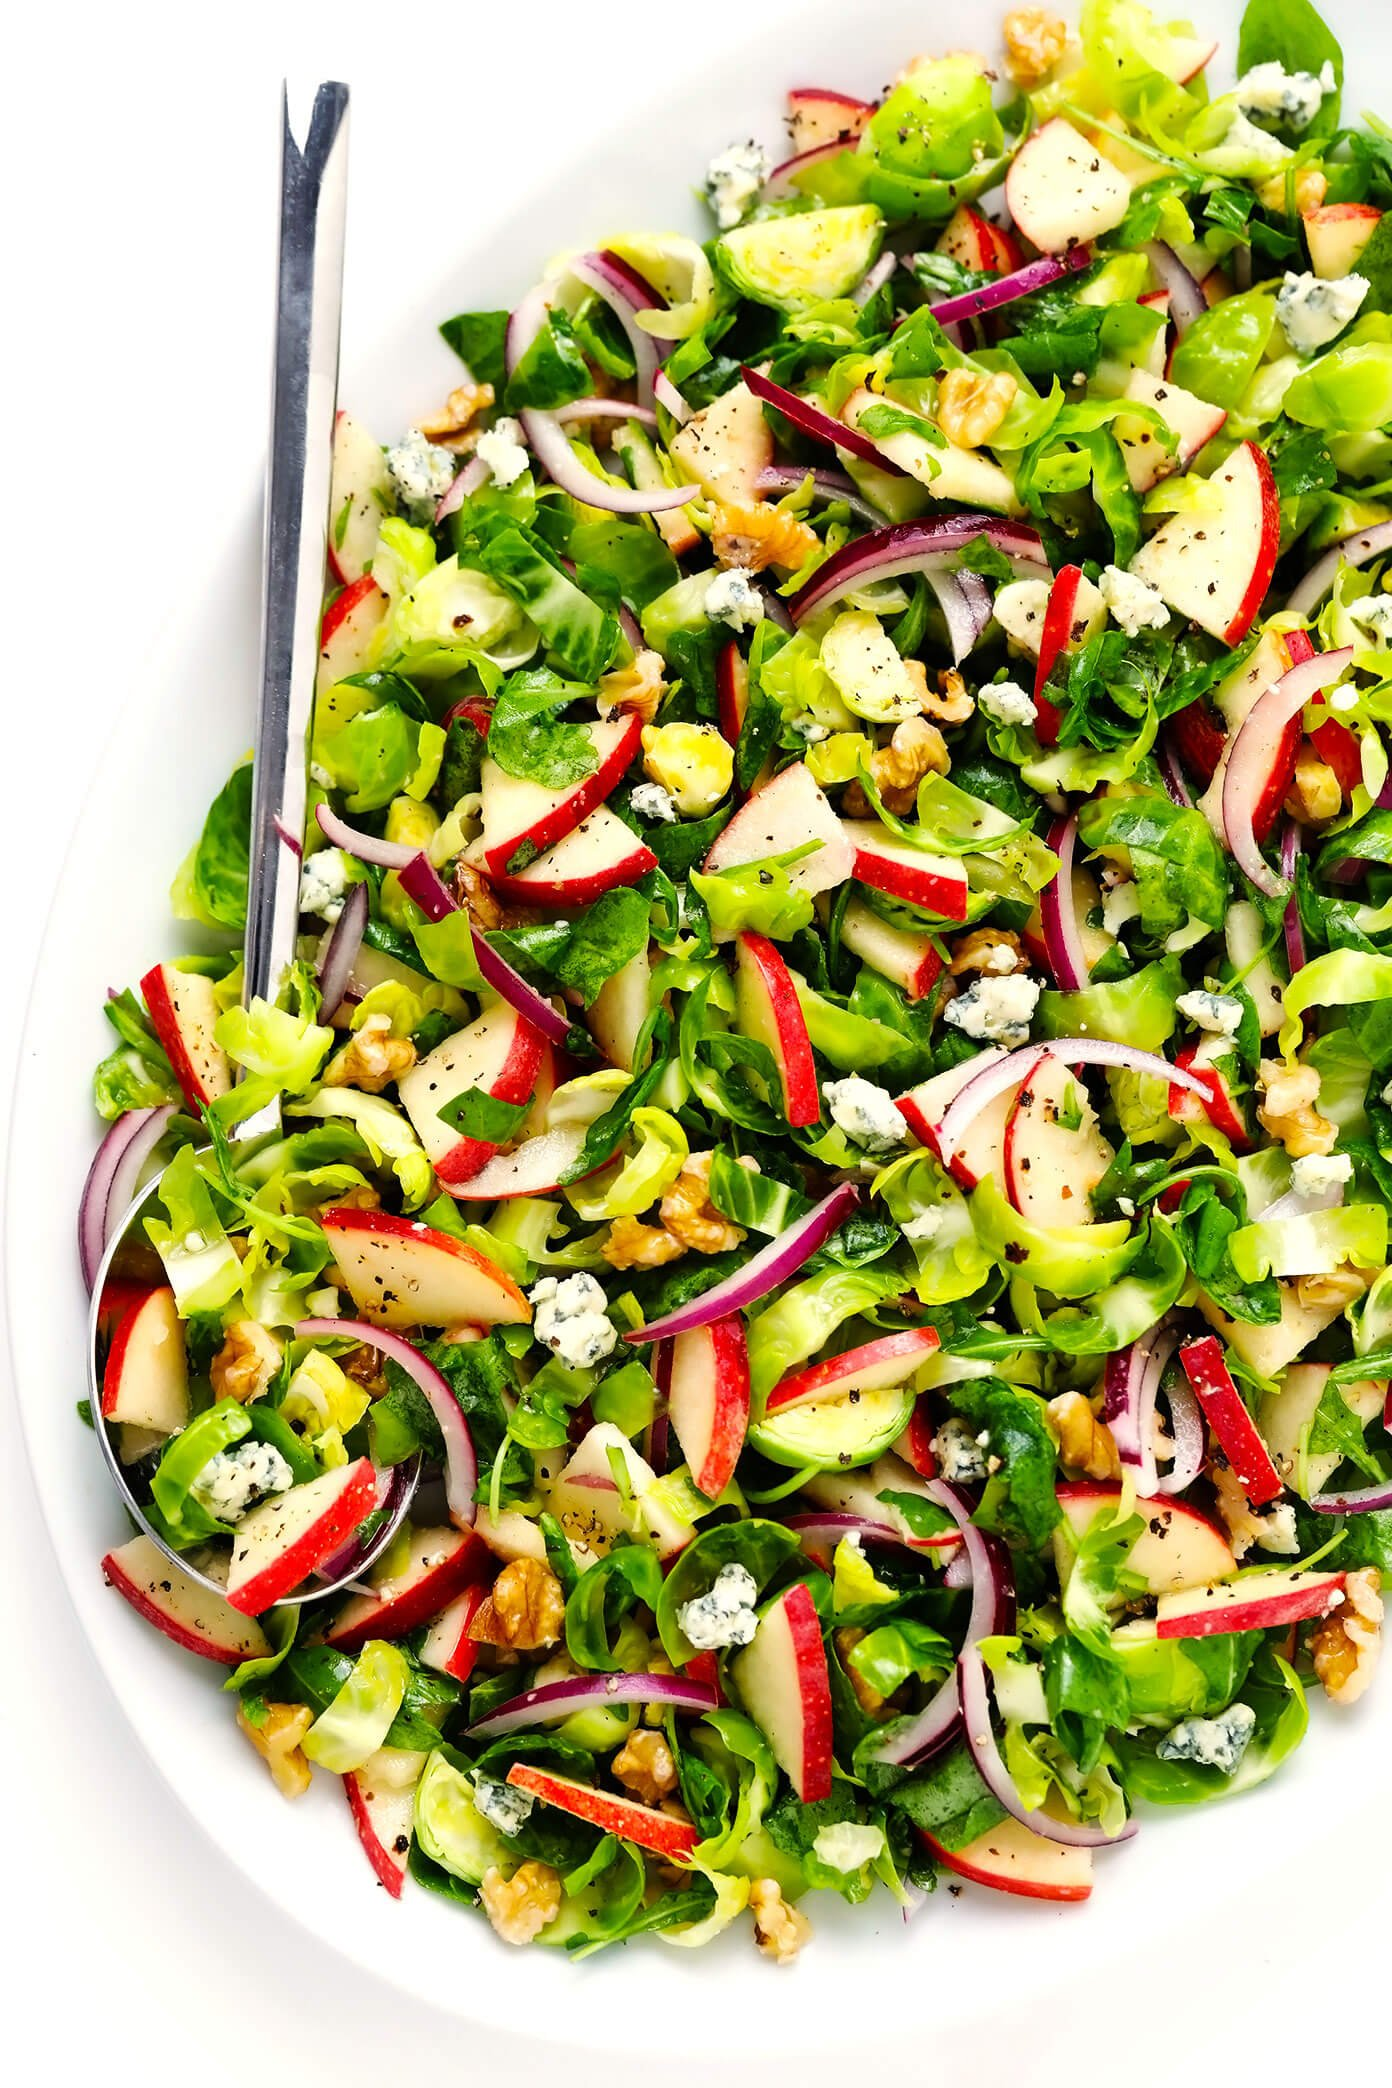 Brussels Sprouts Salad with Apples, Walnuts and Blue Cheese in Serving Bowl